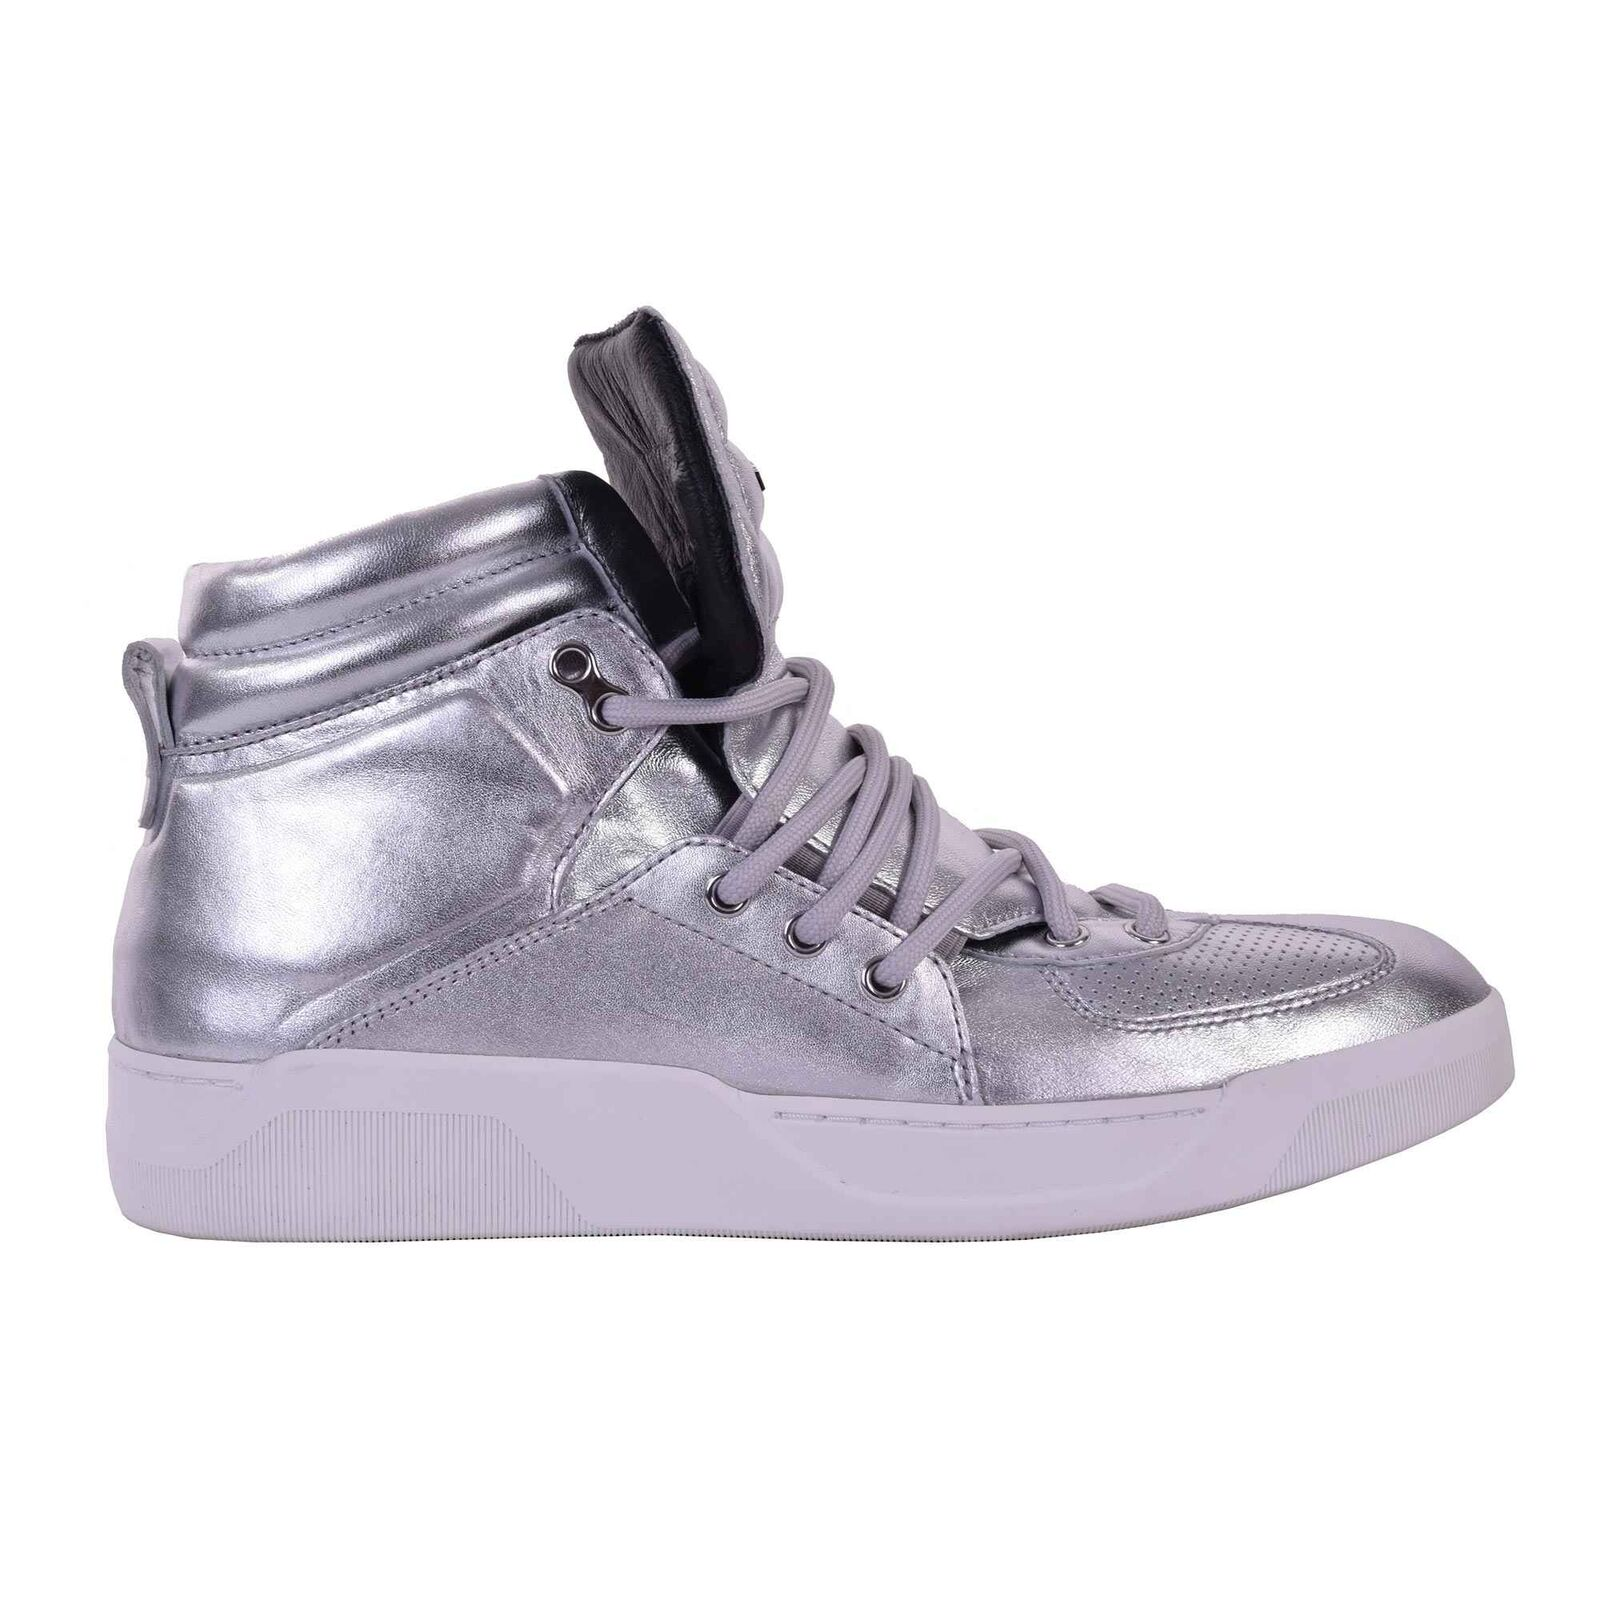 DOLCE & GABBANA Shiny Nappa High-Top Sneaker Shoes BENELUX Silver Gray 05936